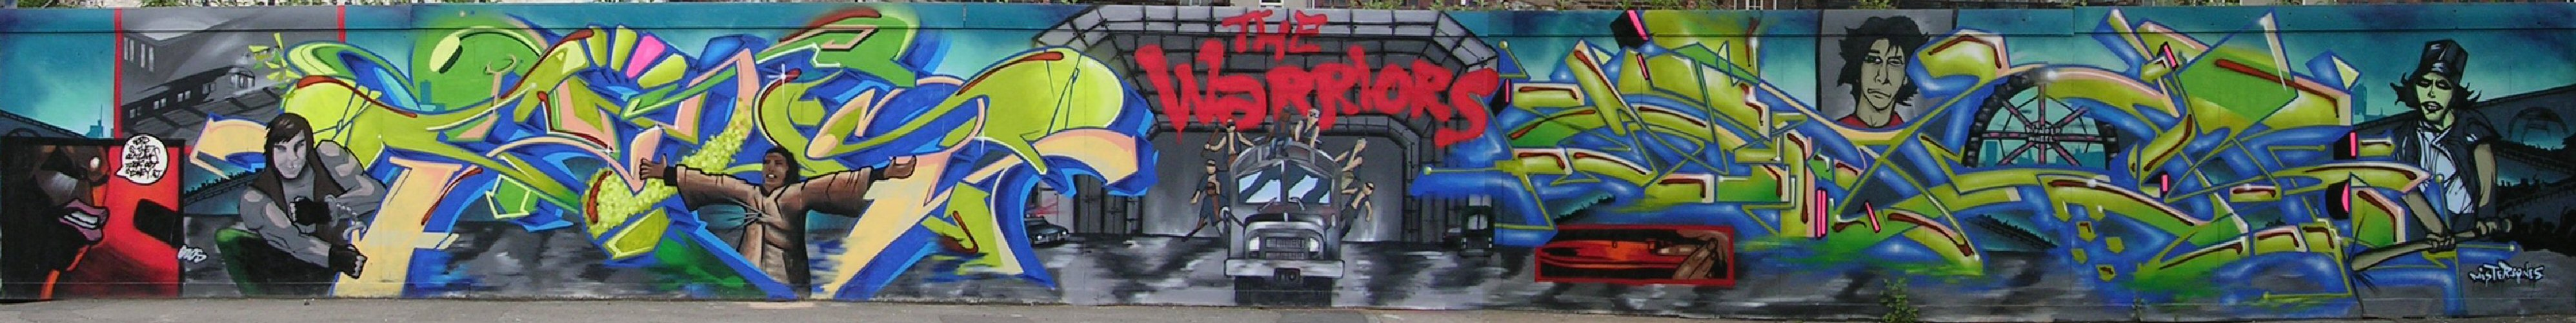 The Warriors panorama by Gzos and Jaer - 10 June 2013